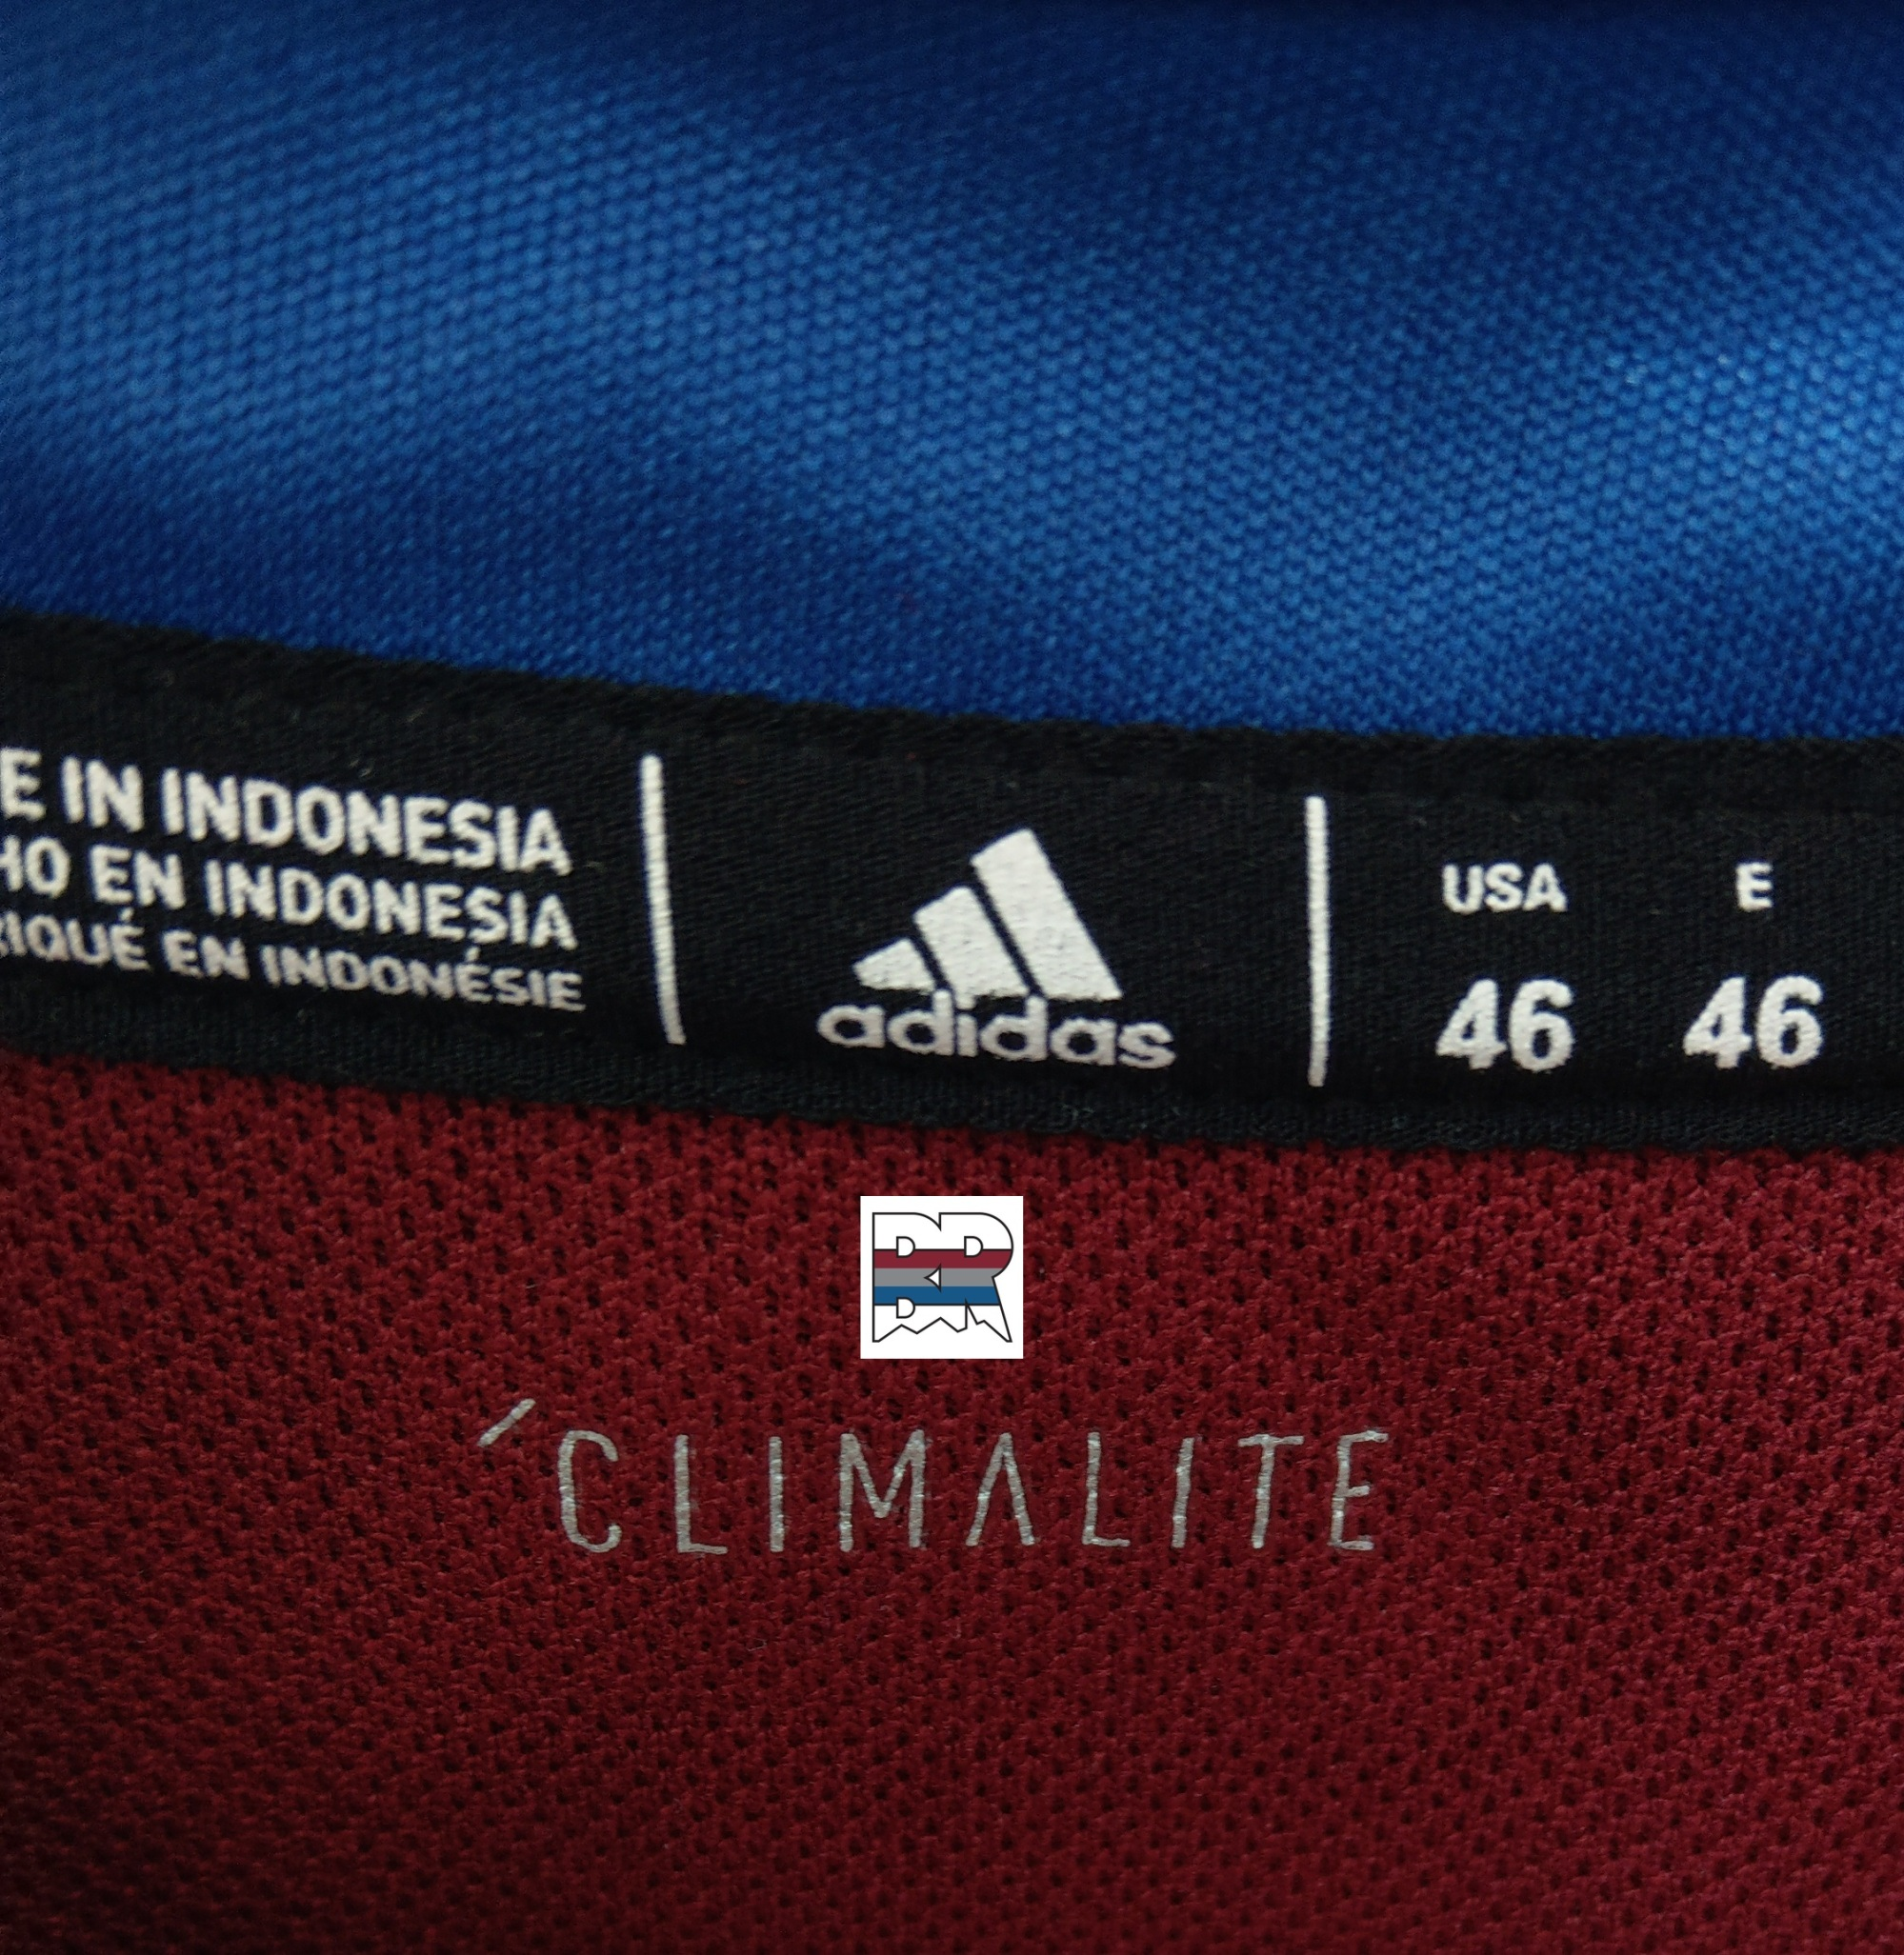 adidas-away-neck-crop.jpg?w=2000